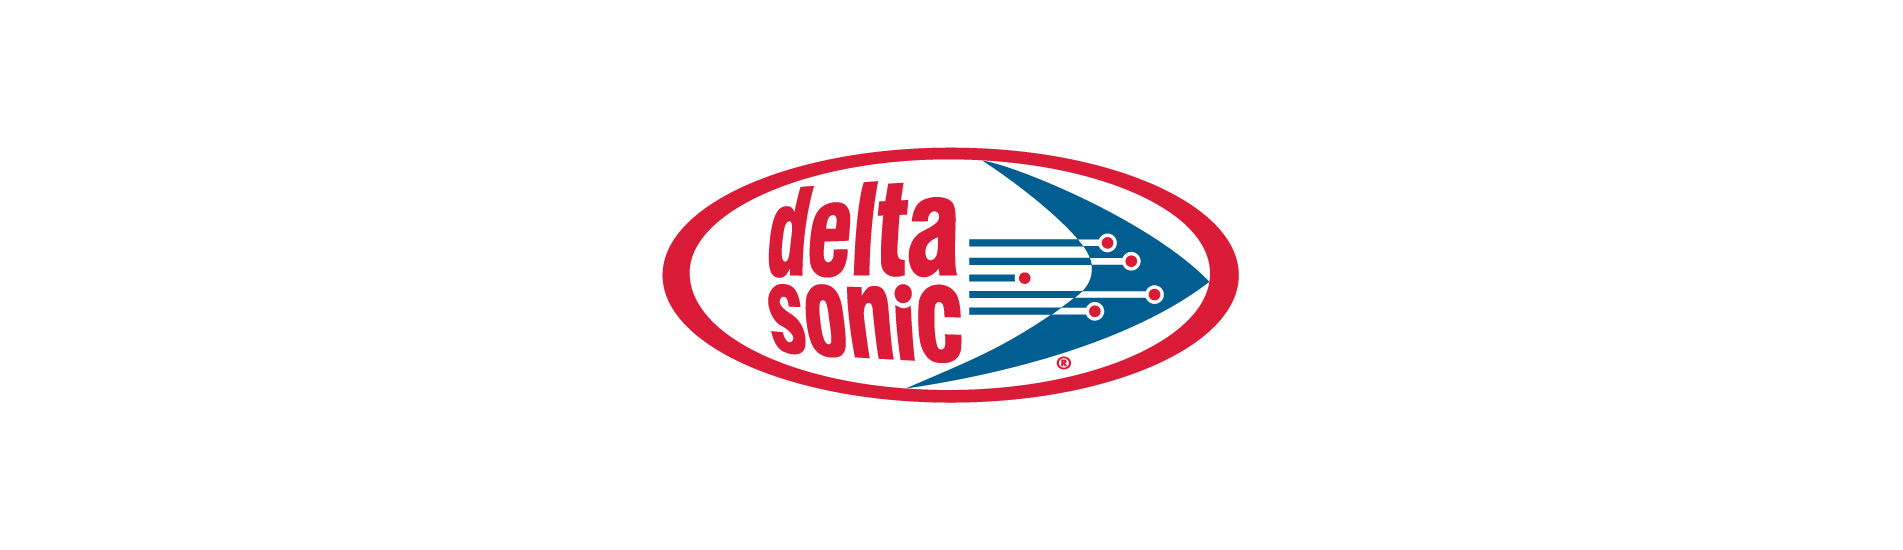 Delta Sonic Coupon Books now available!